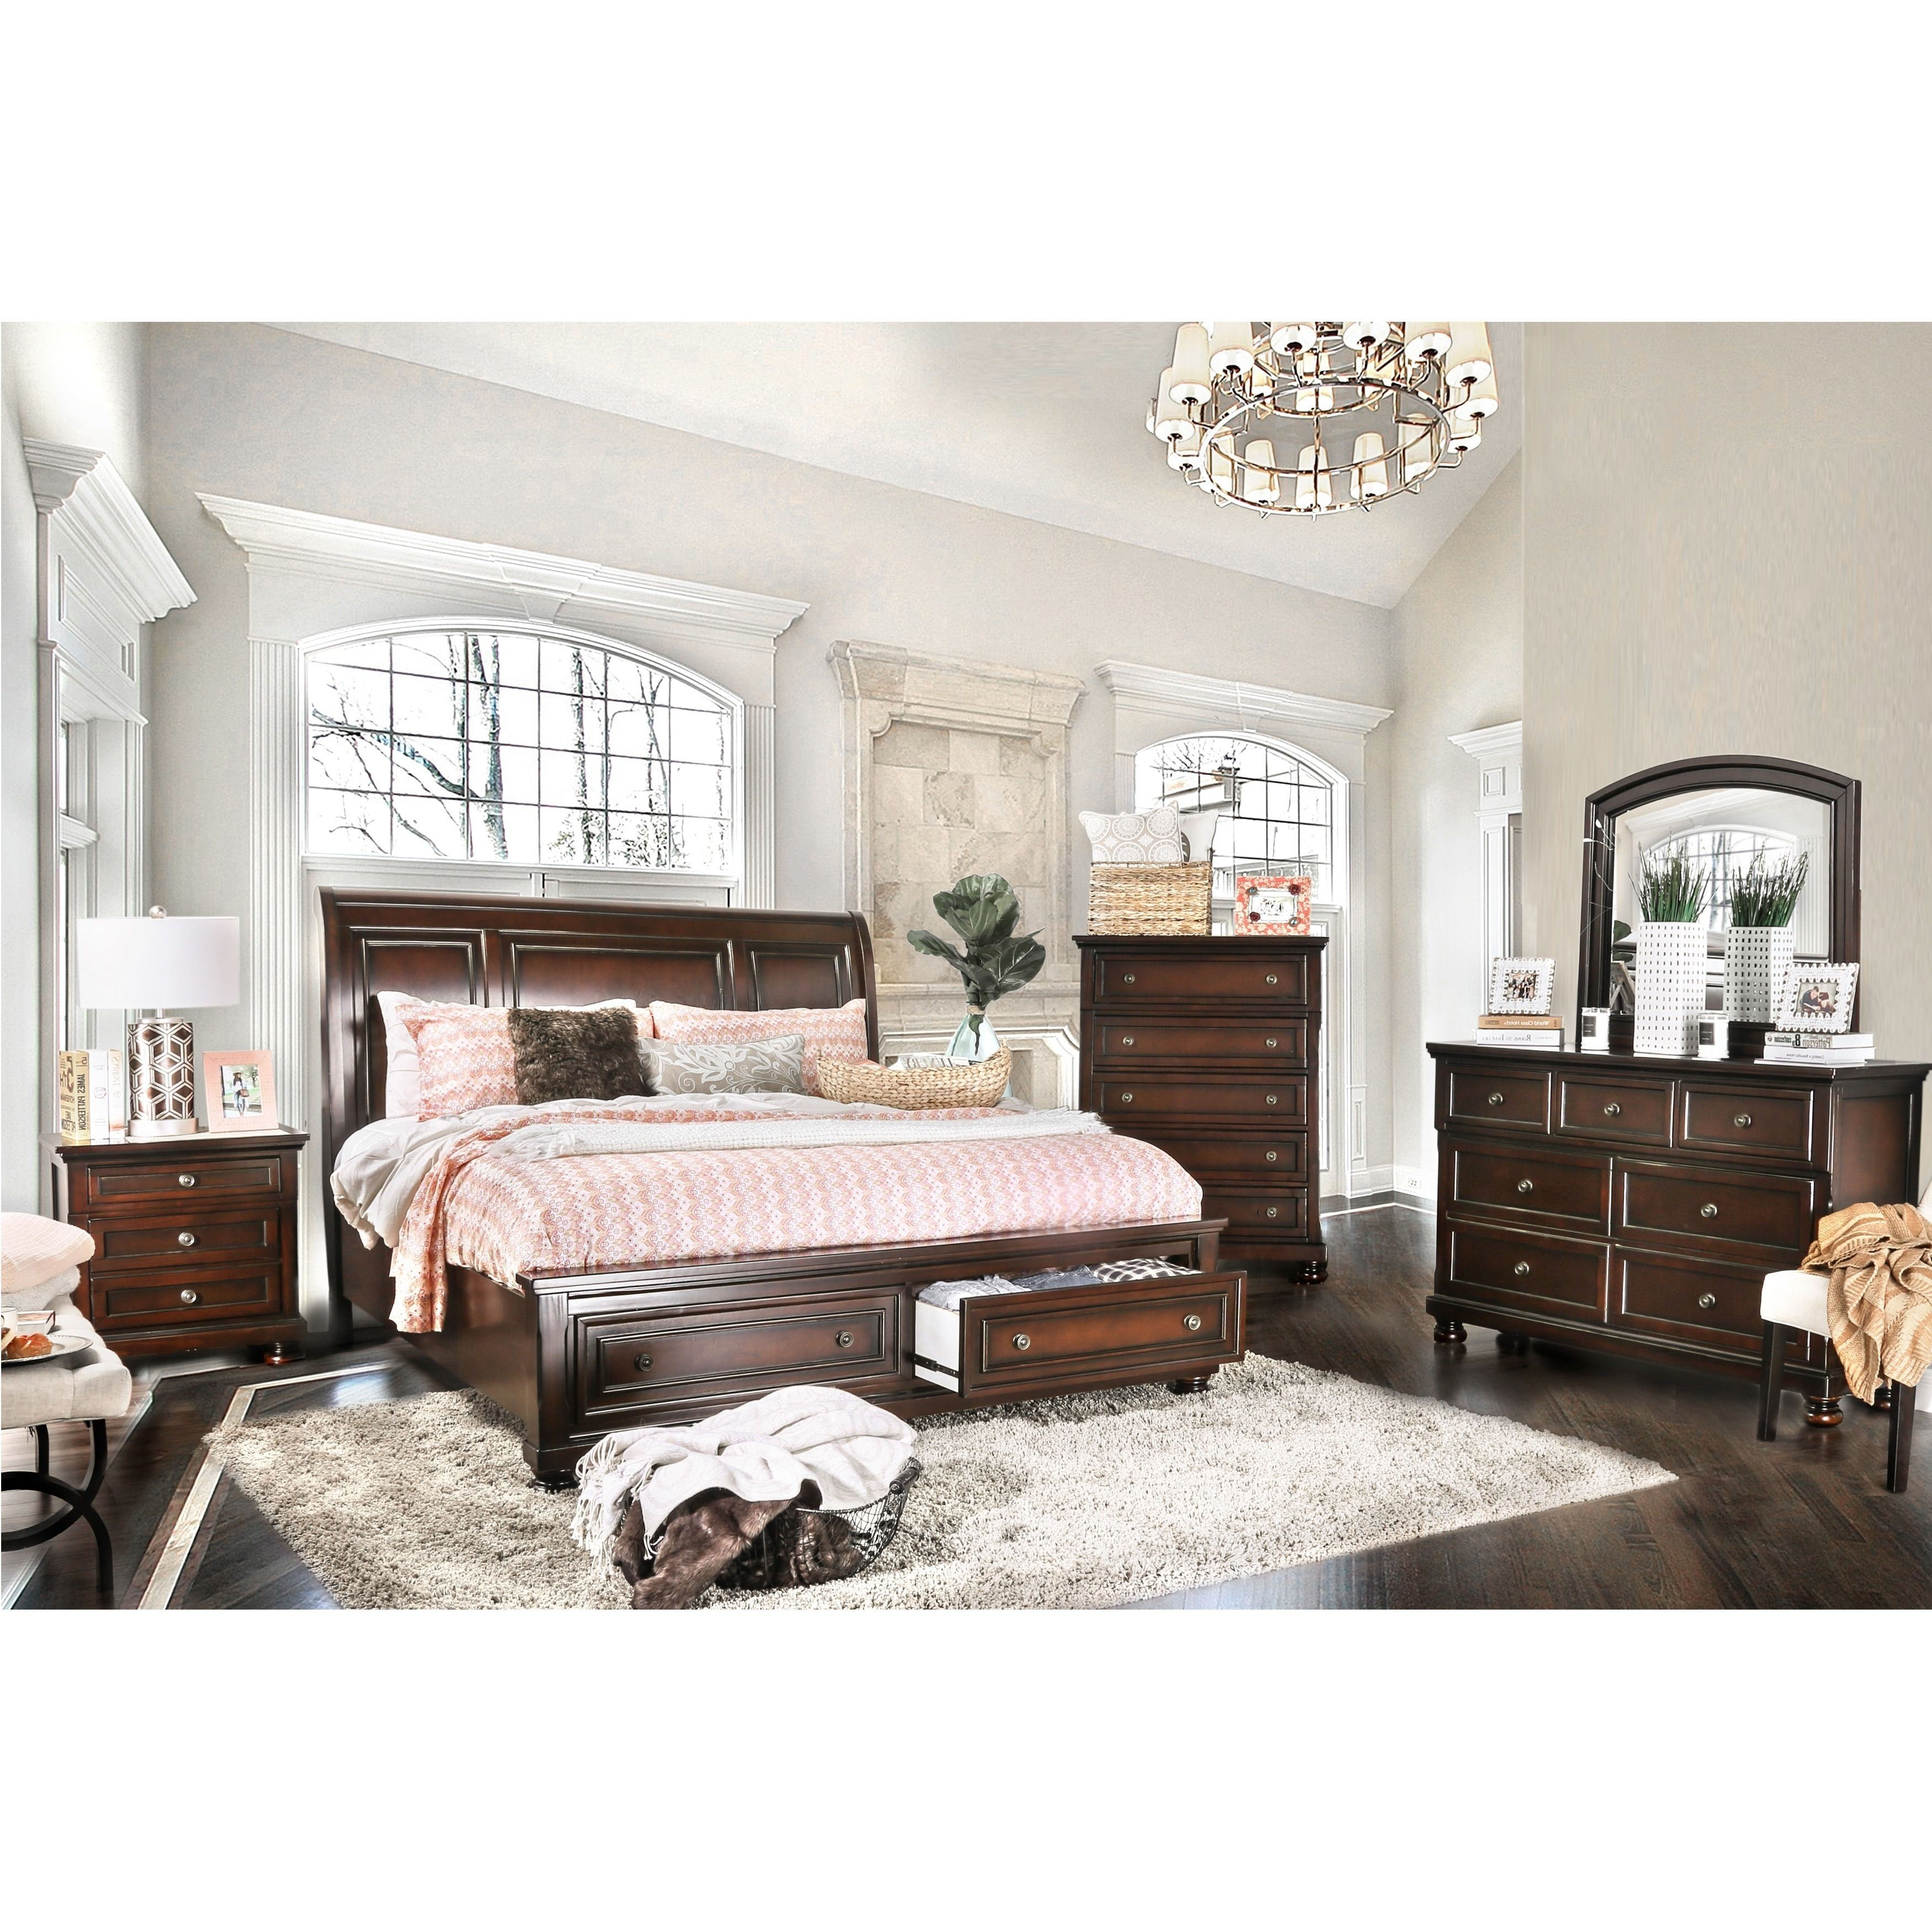 Best Furniture Of America Barelle I Cherry 4 Piece Bedroom Set Bedroom Furniture Sets Furniture 640 x 480